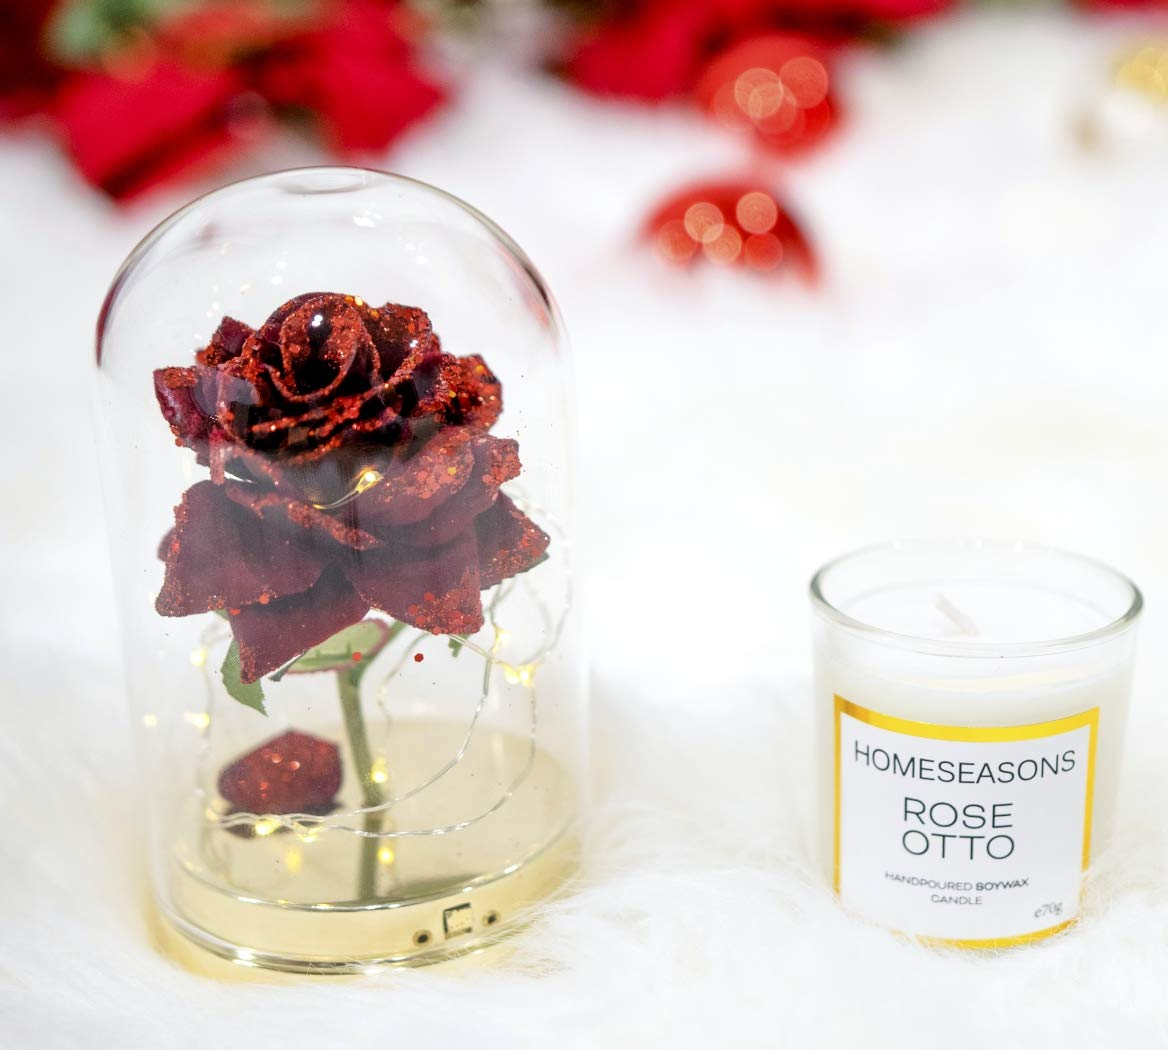 HOMESEASONS Pre-Lit Glass Dome Red Rose with Candle Gift Pack (5.5 Inch)